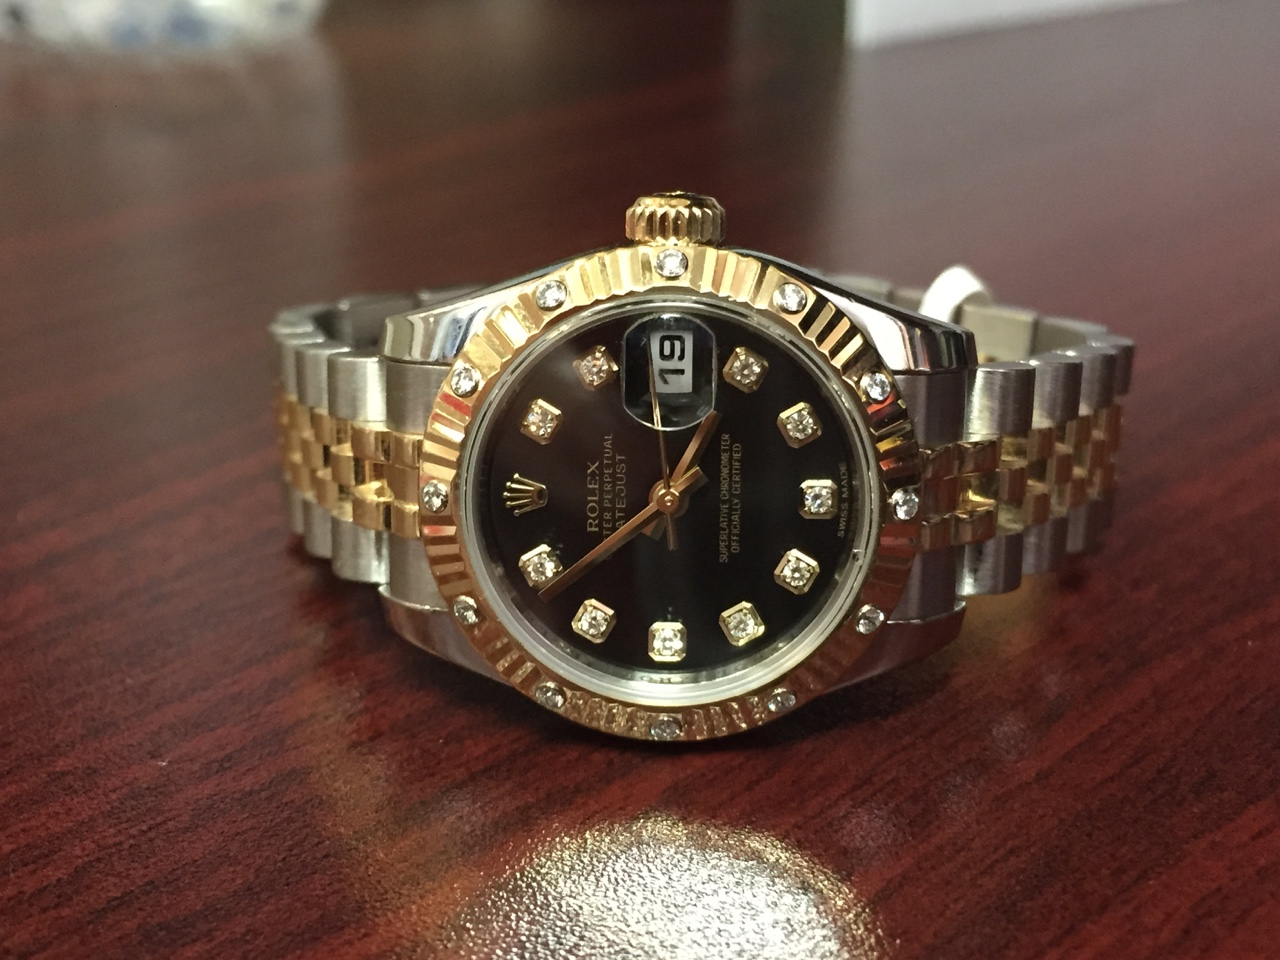 Rolex Datejust Two-Tone with Diamonds - $7,000